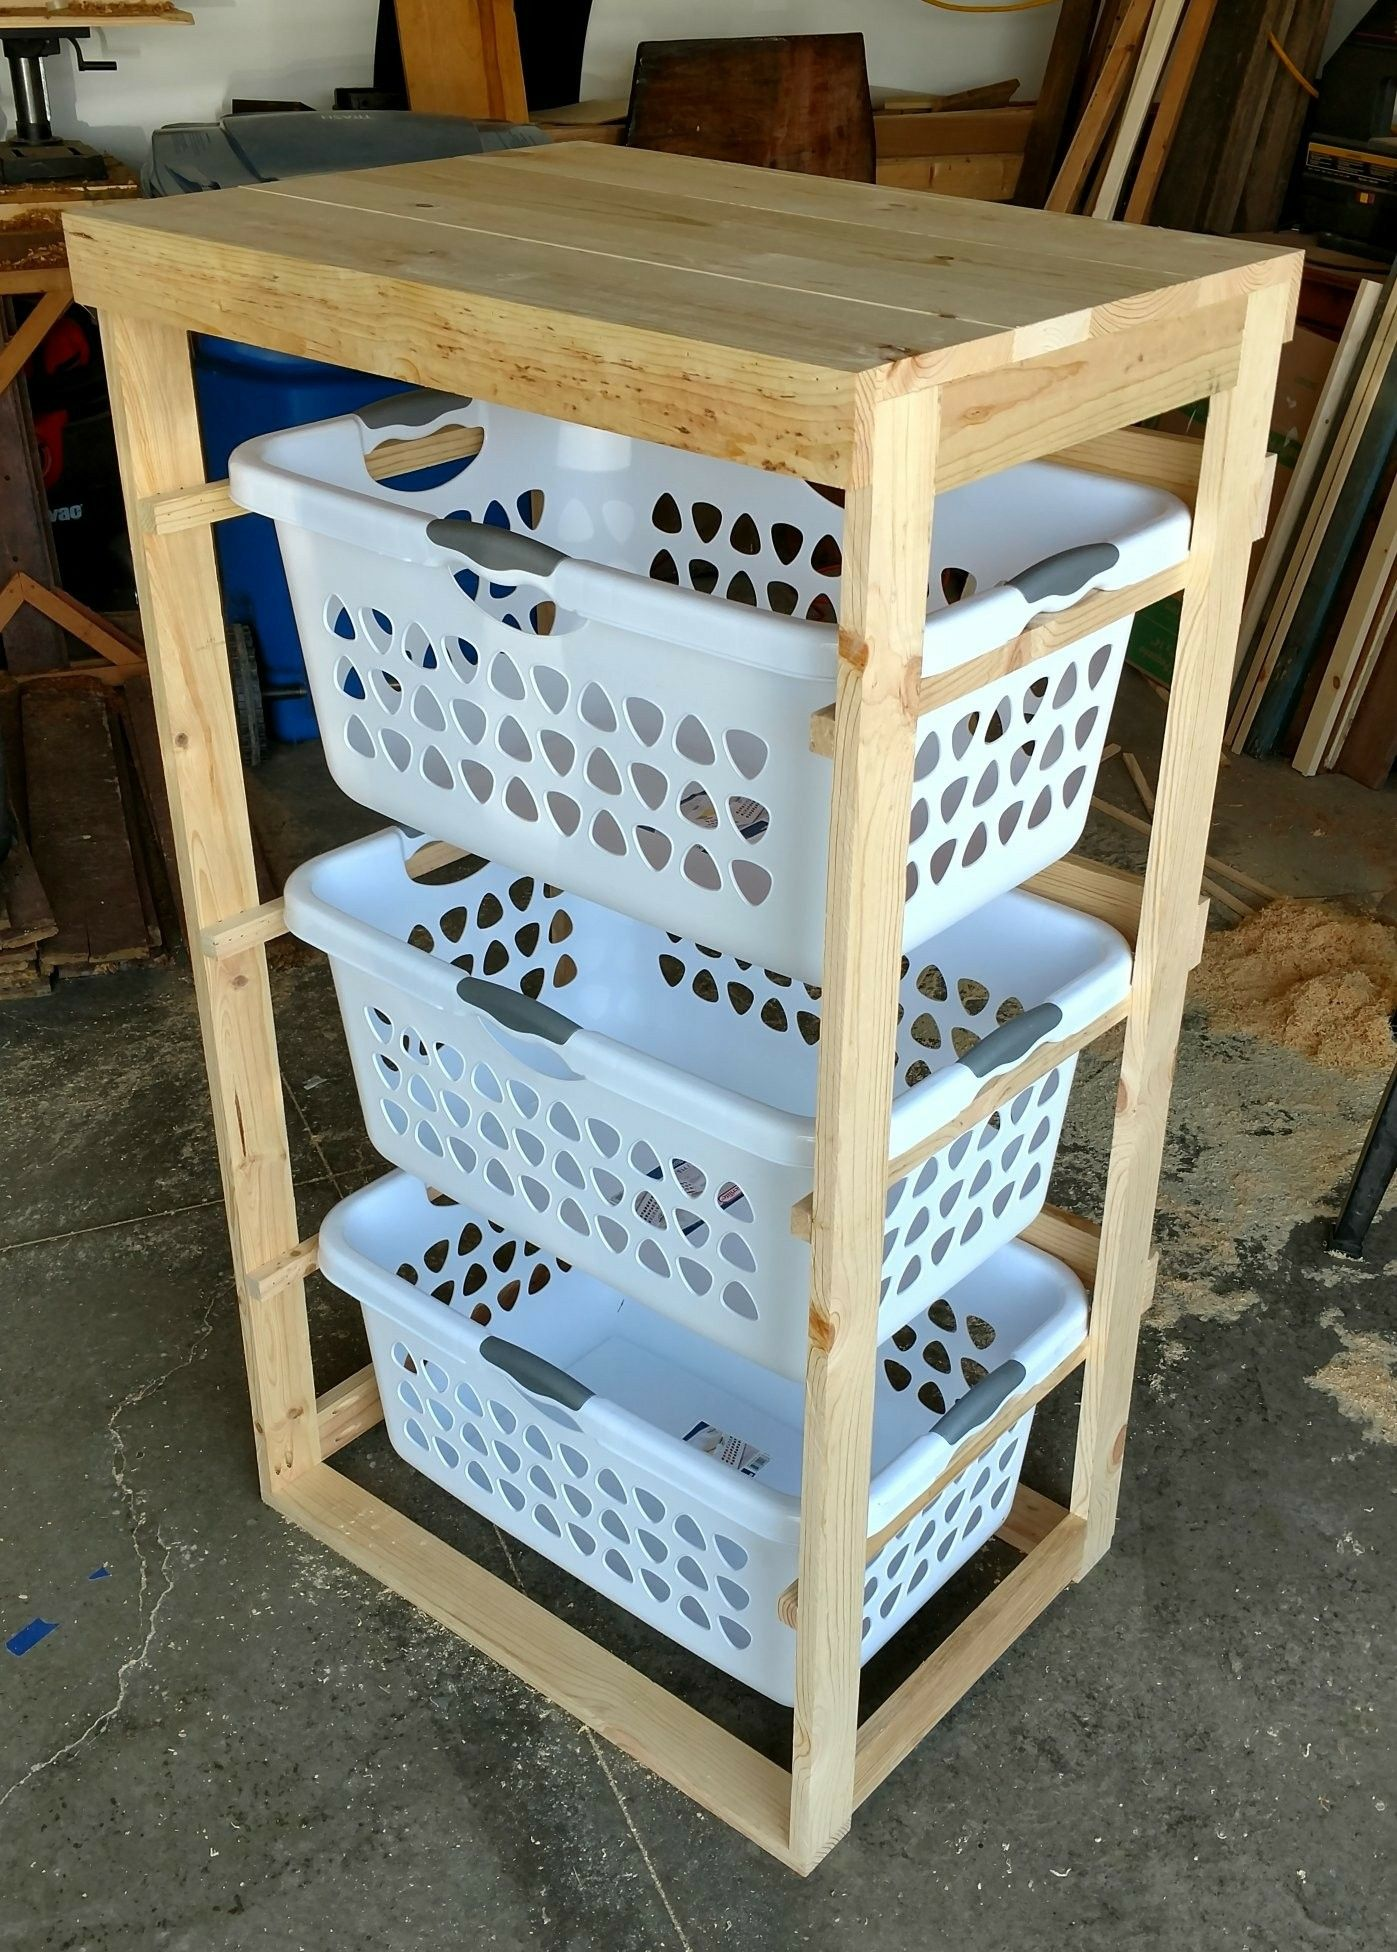 3 Tier Laundry Rack Total Cost To Build Including 3 Laundry Baskets 43 13 Laundry Basket Holder Diy Laundry Basket Ikea Laundry Basket